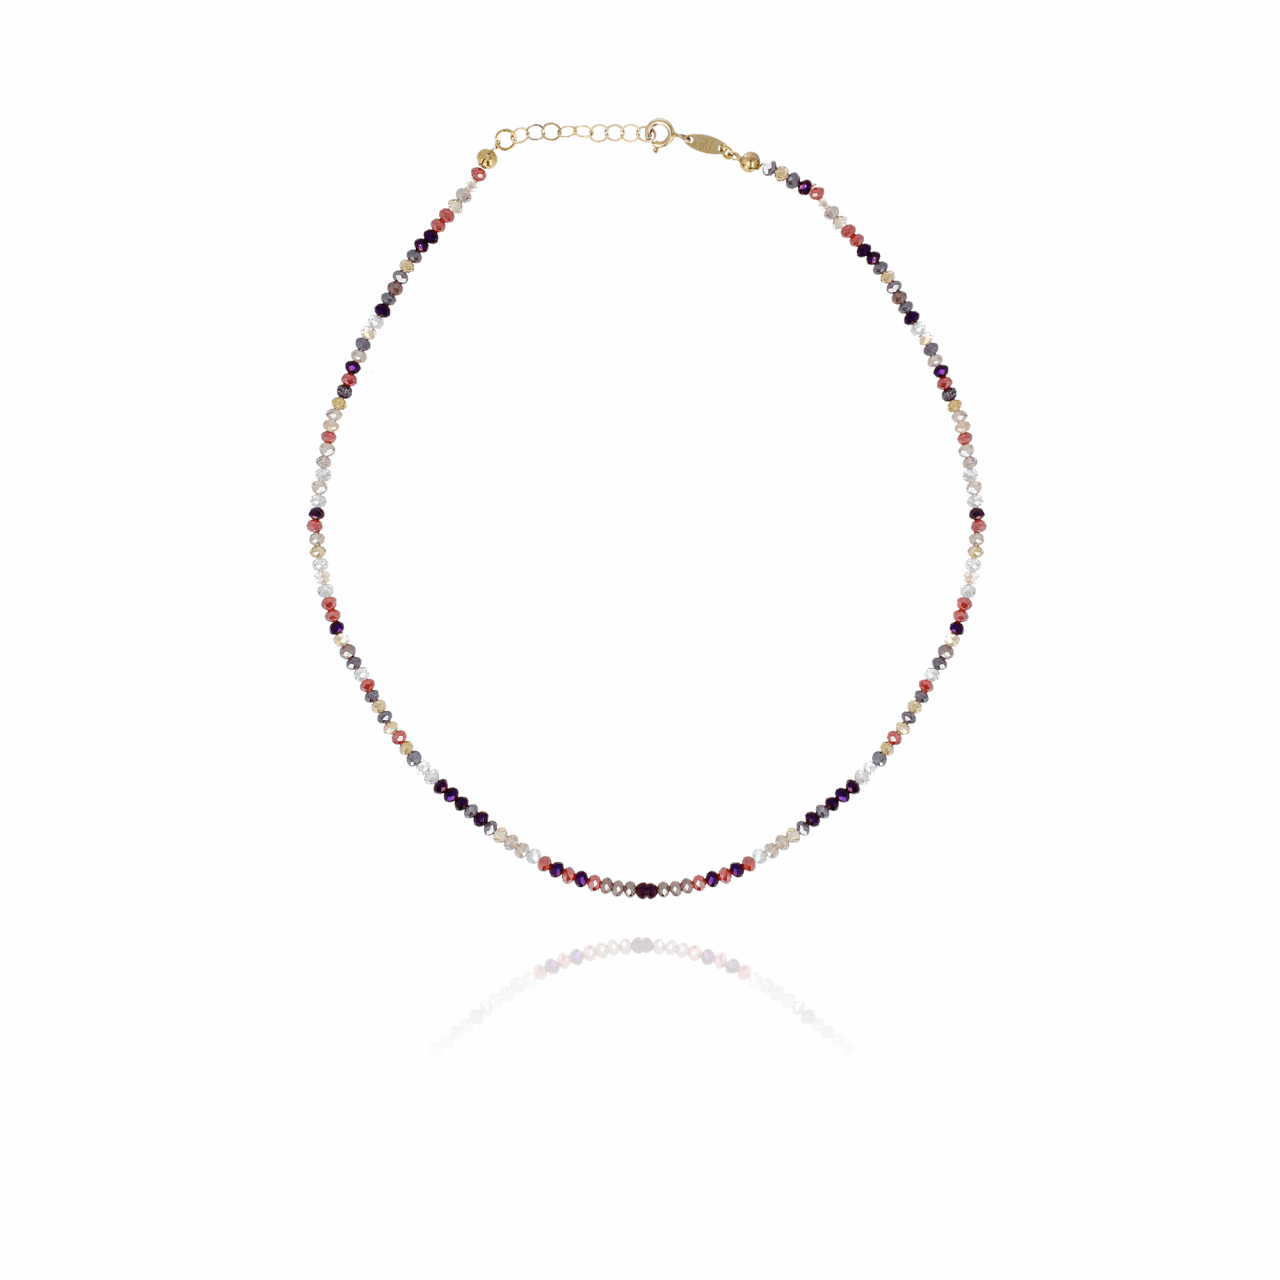 Mixed purple one of a kind ketting